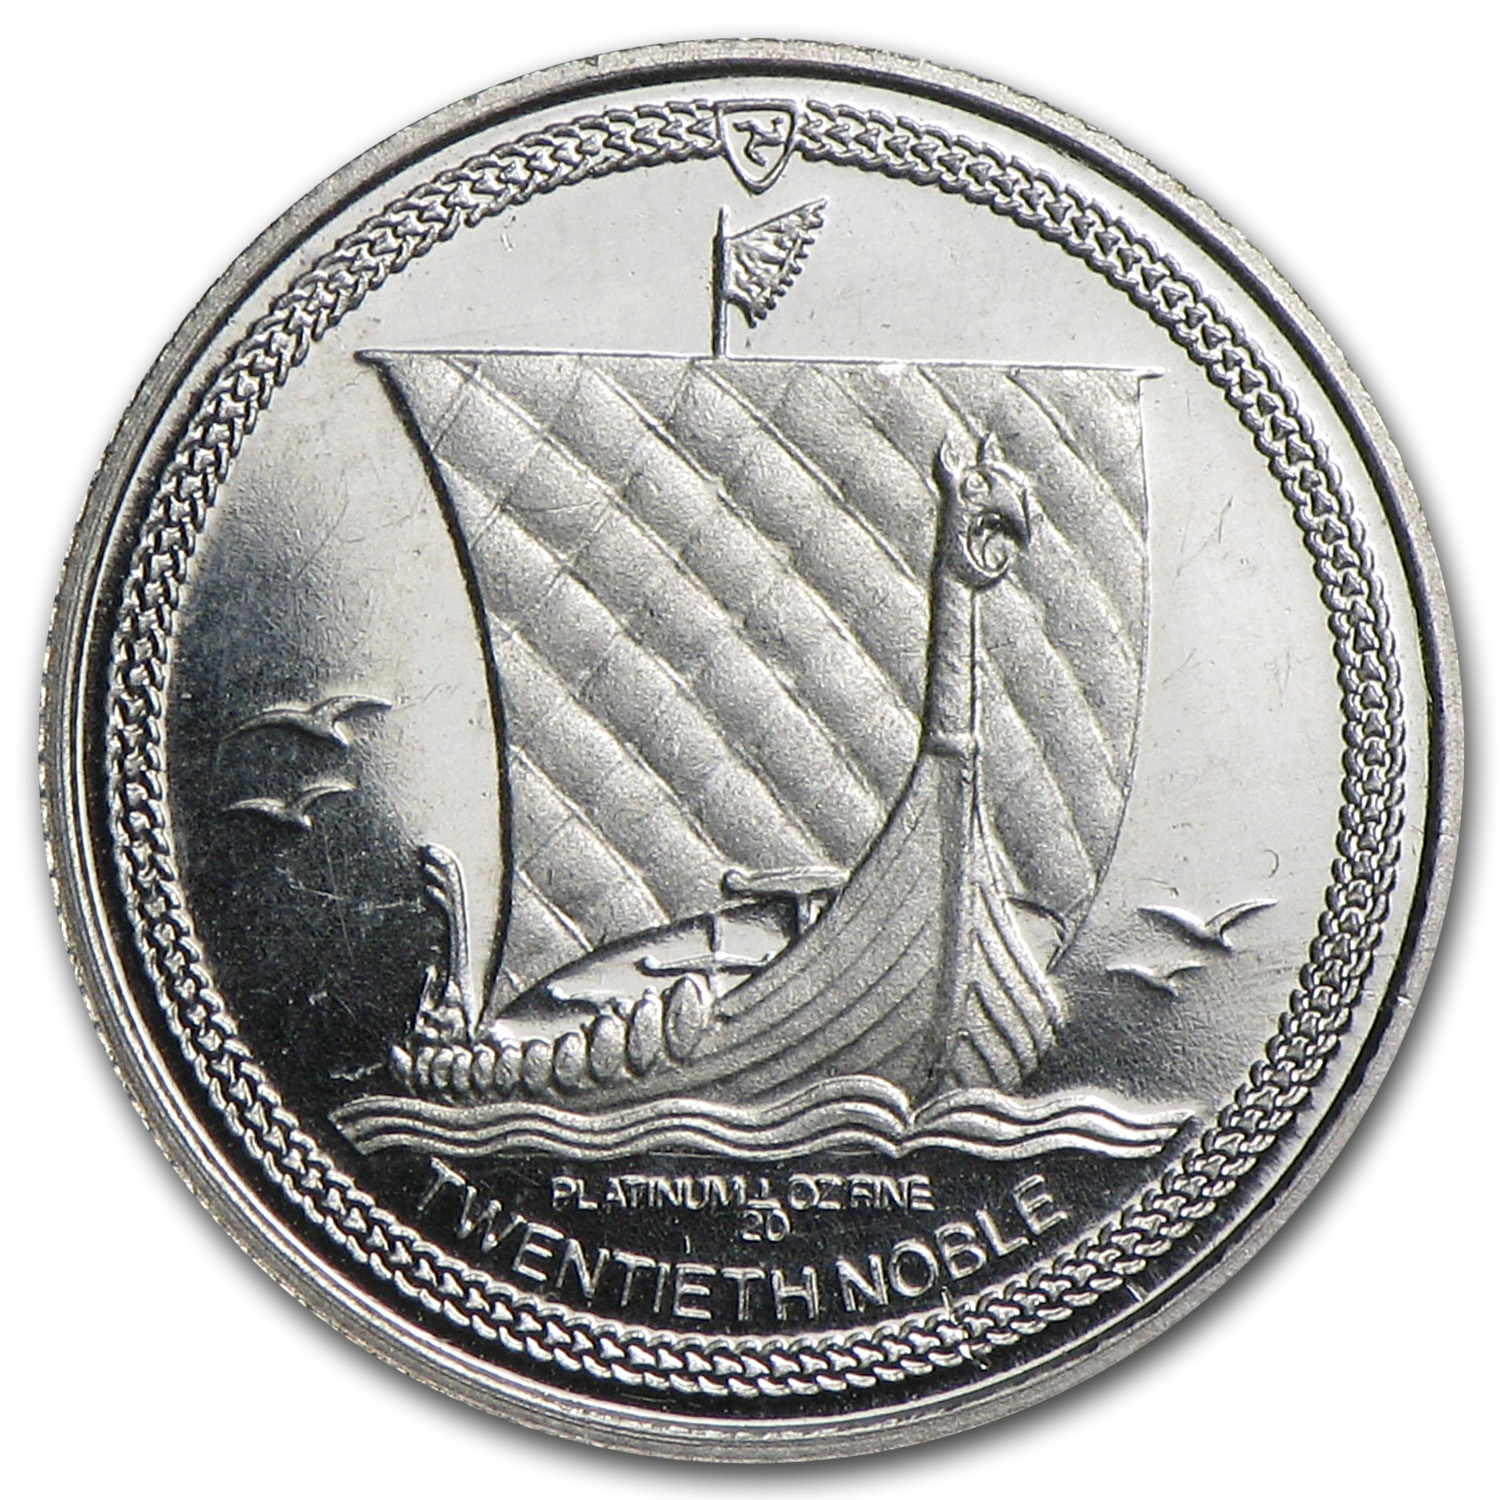 Isle of Man 1/20 oz Platinum Noble Proof